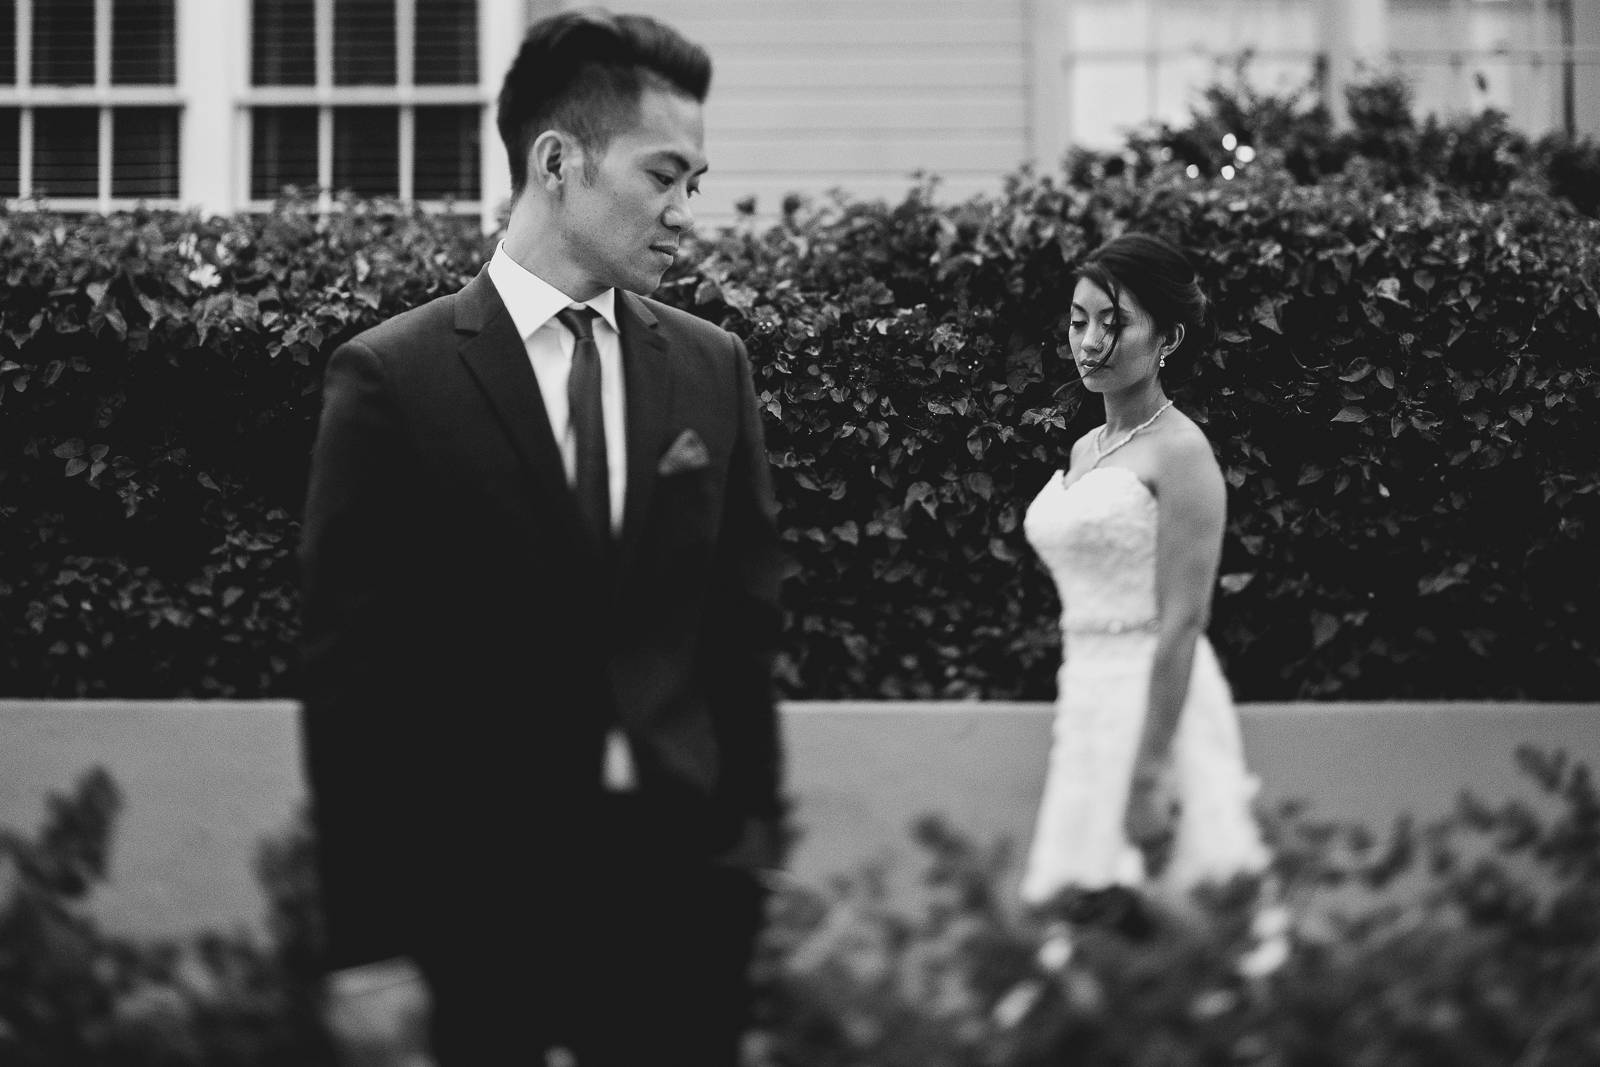 tilt-shift wedding photo